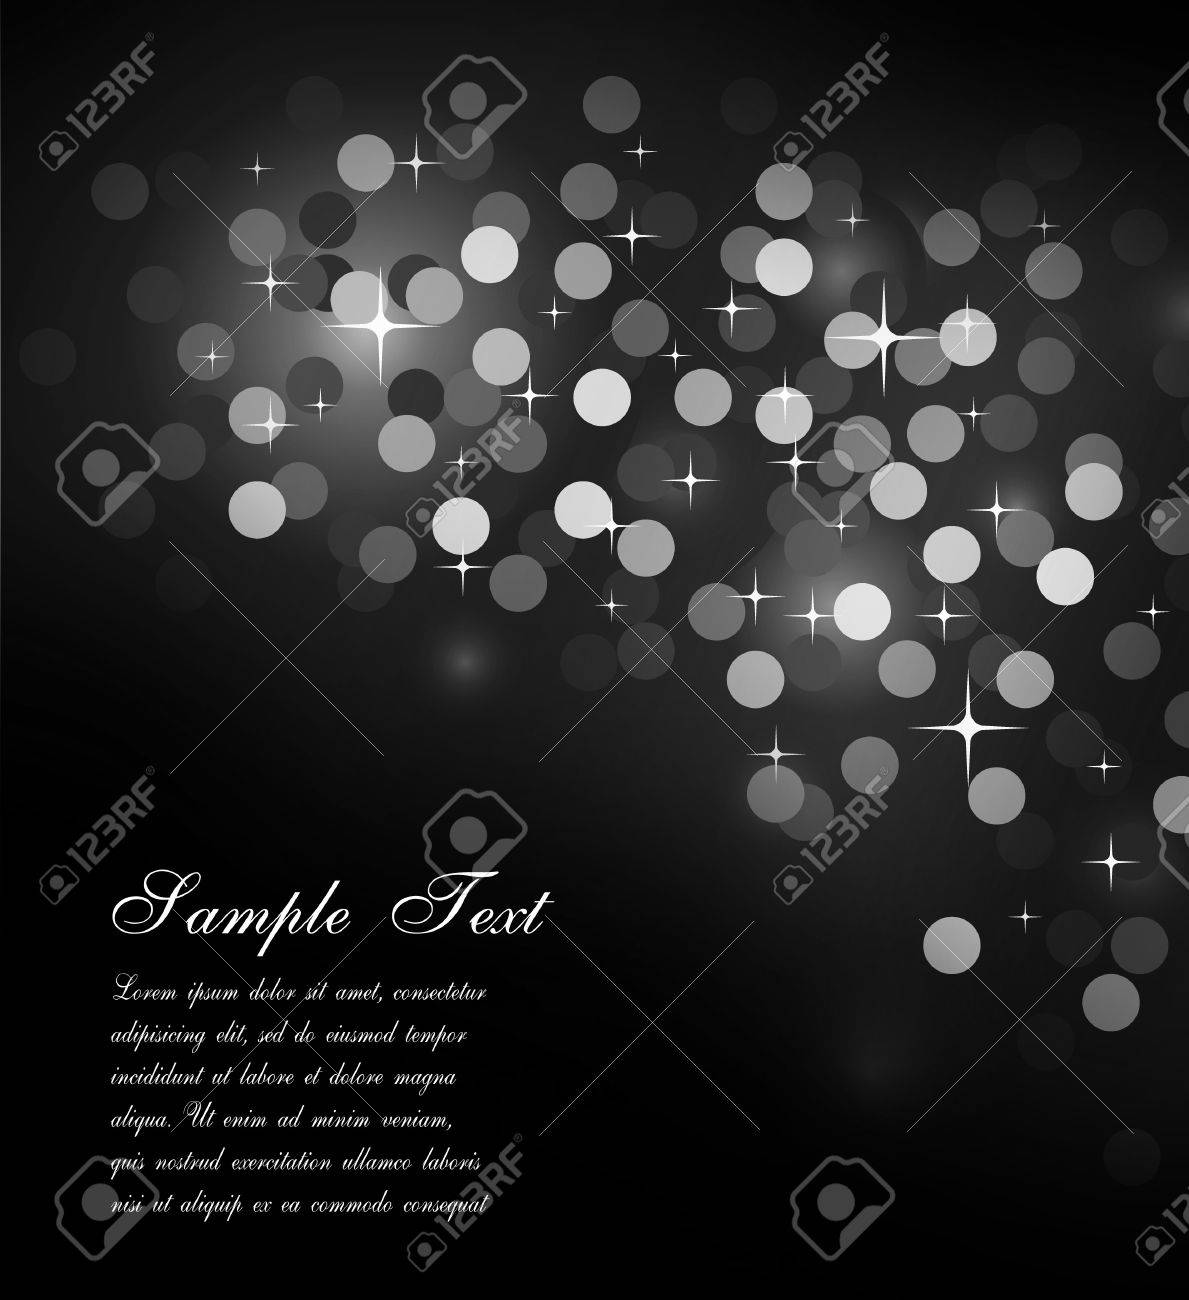 Elegant Colorful Glitter Abstrat Lights for Flyers Background Stock Photo - 7825322